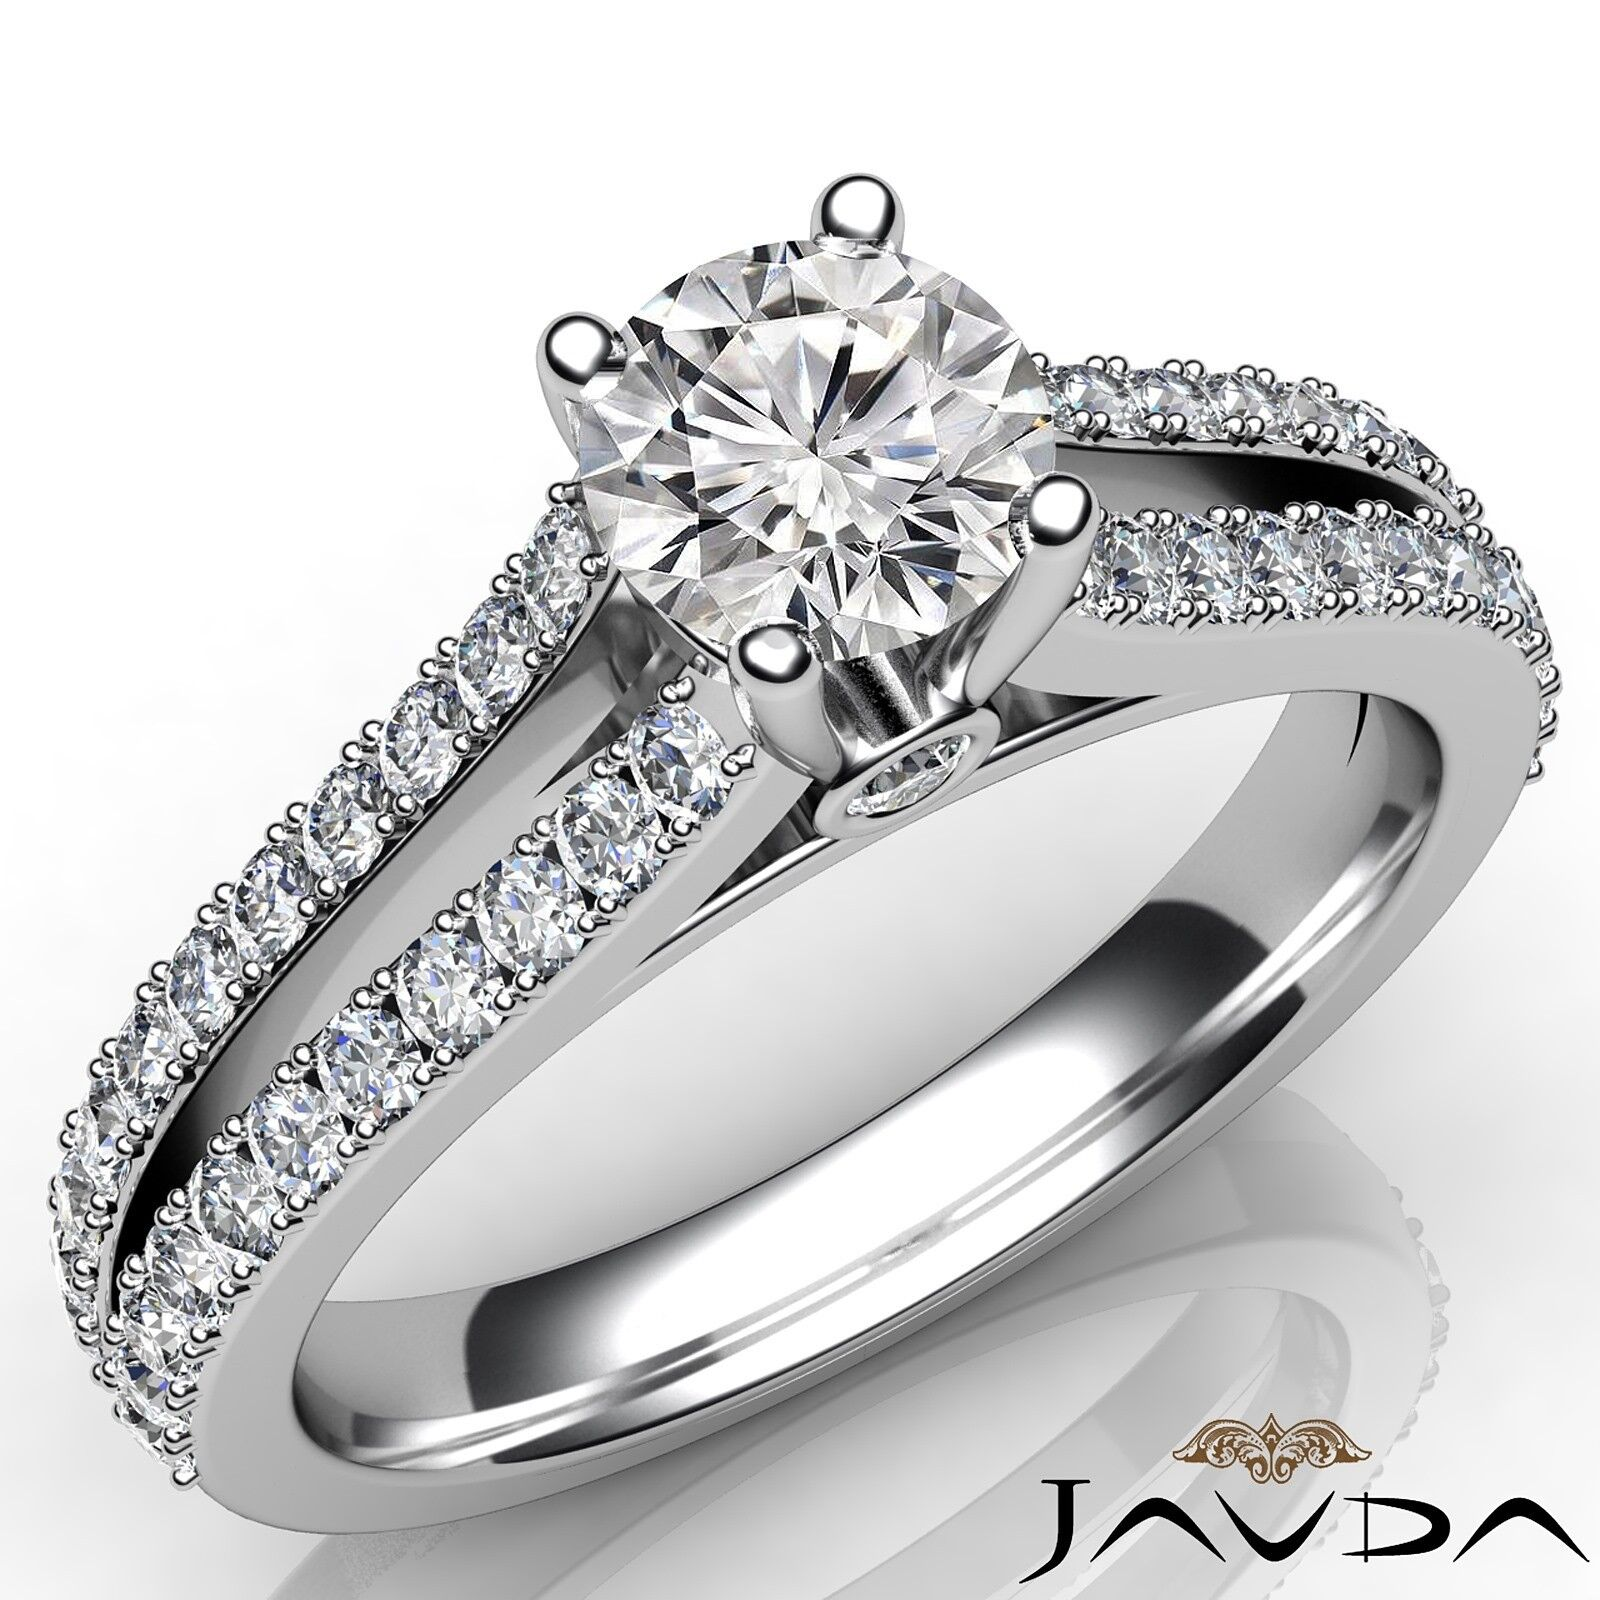 1.25ctw Certified Stone Round Diamond Engagement Ring GIA H-VS2 White Gold Rings